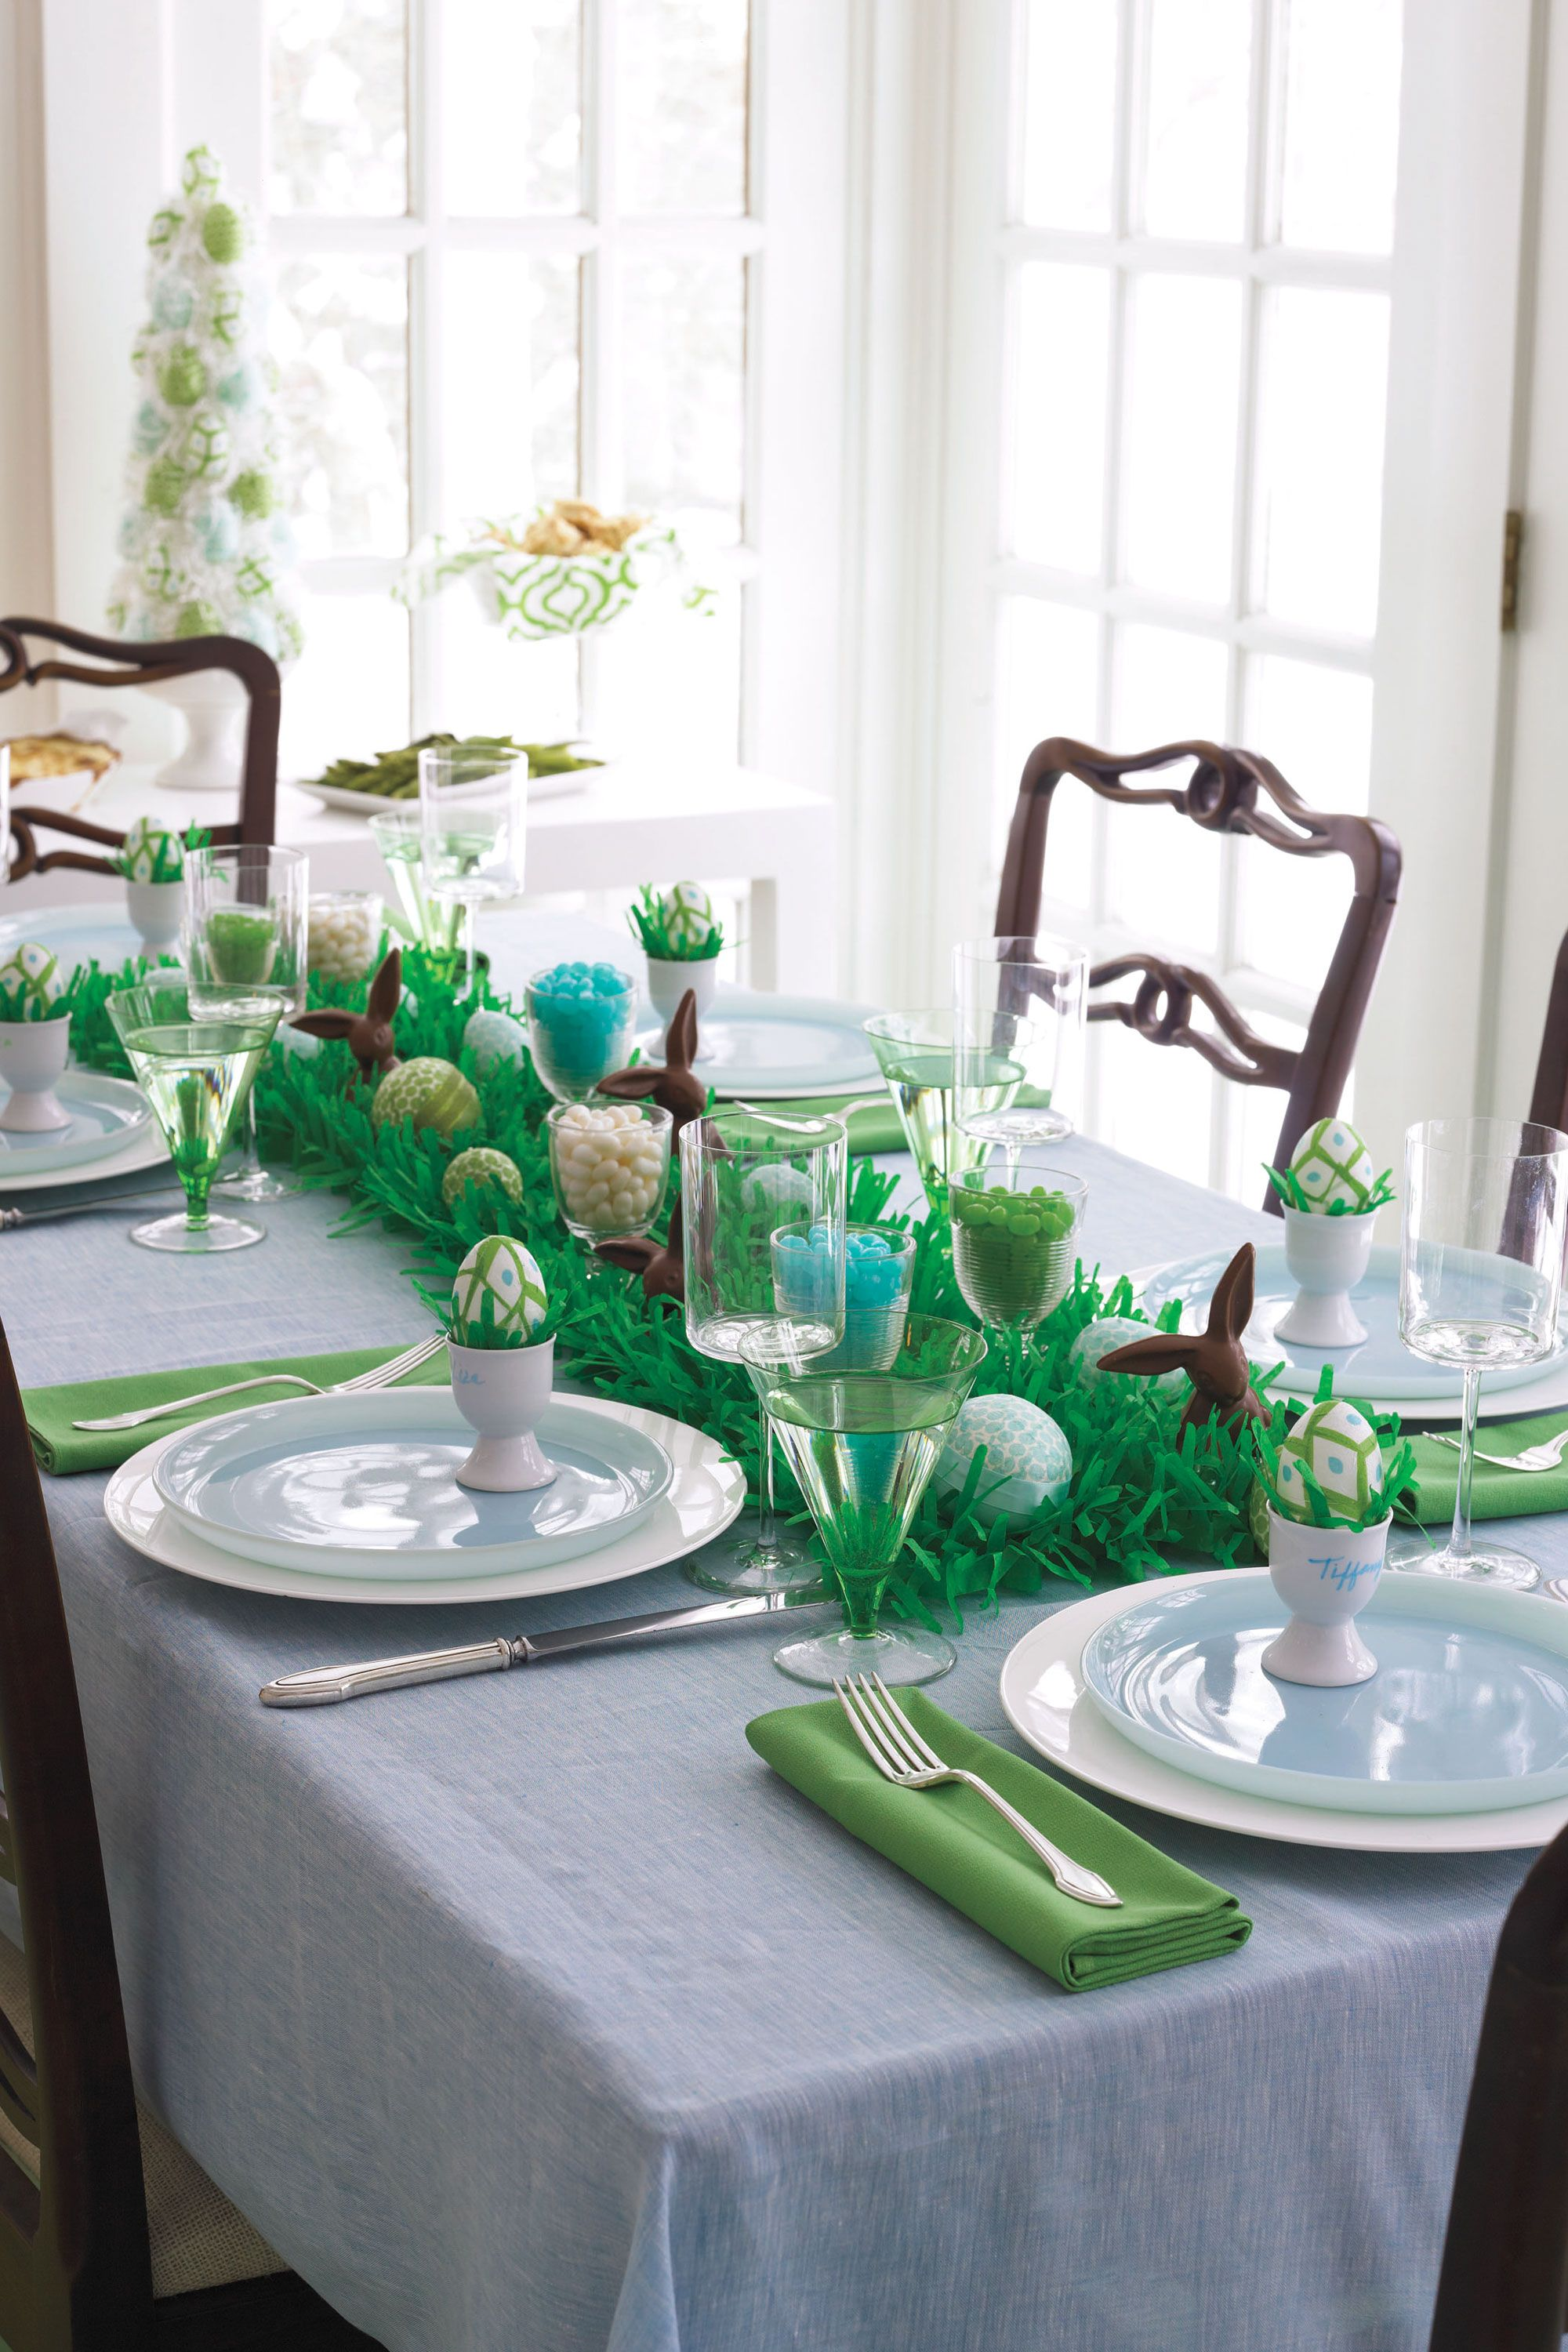 & 24 Easter Table Decorations - Table Decor Ideas for Easter Brunch